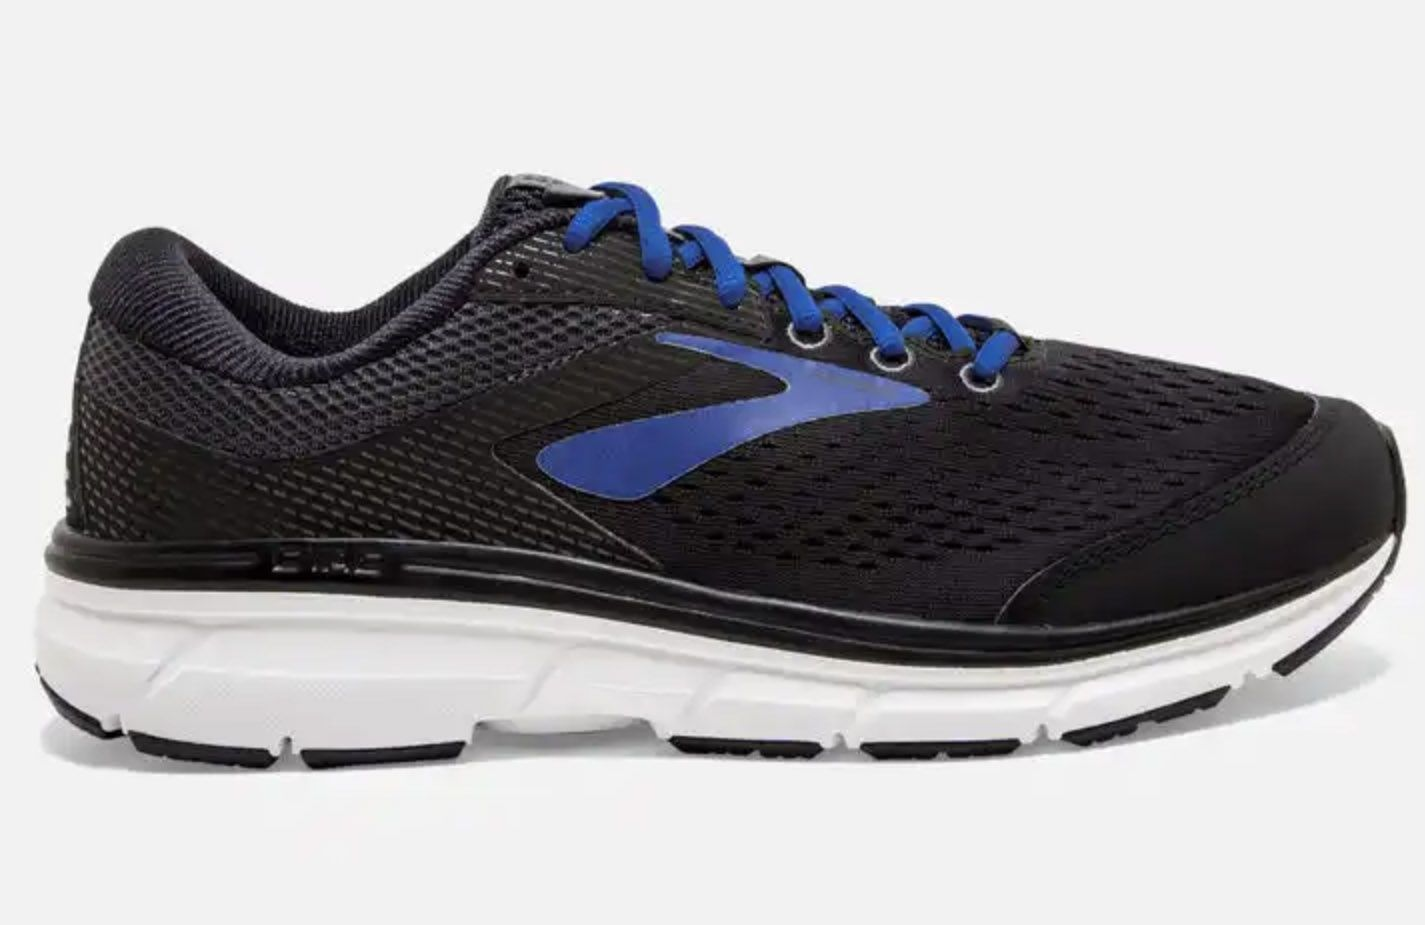 best mizuno shoes for walking everyday zumba wikipedia in english